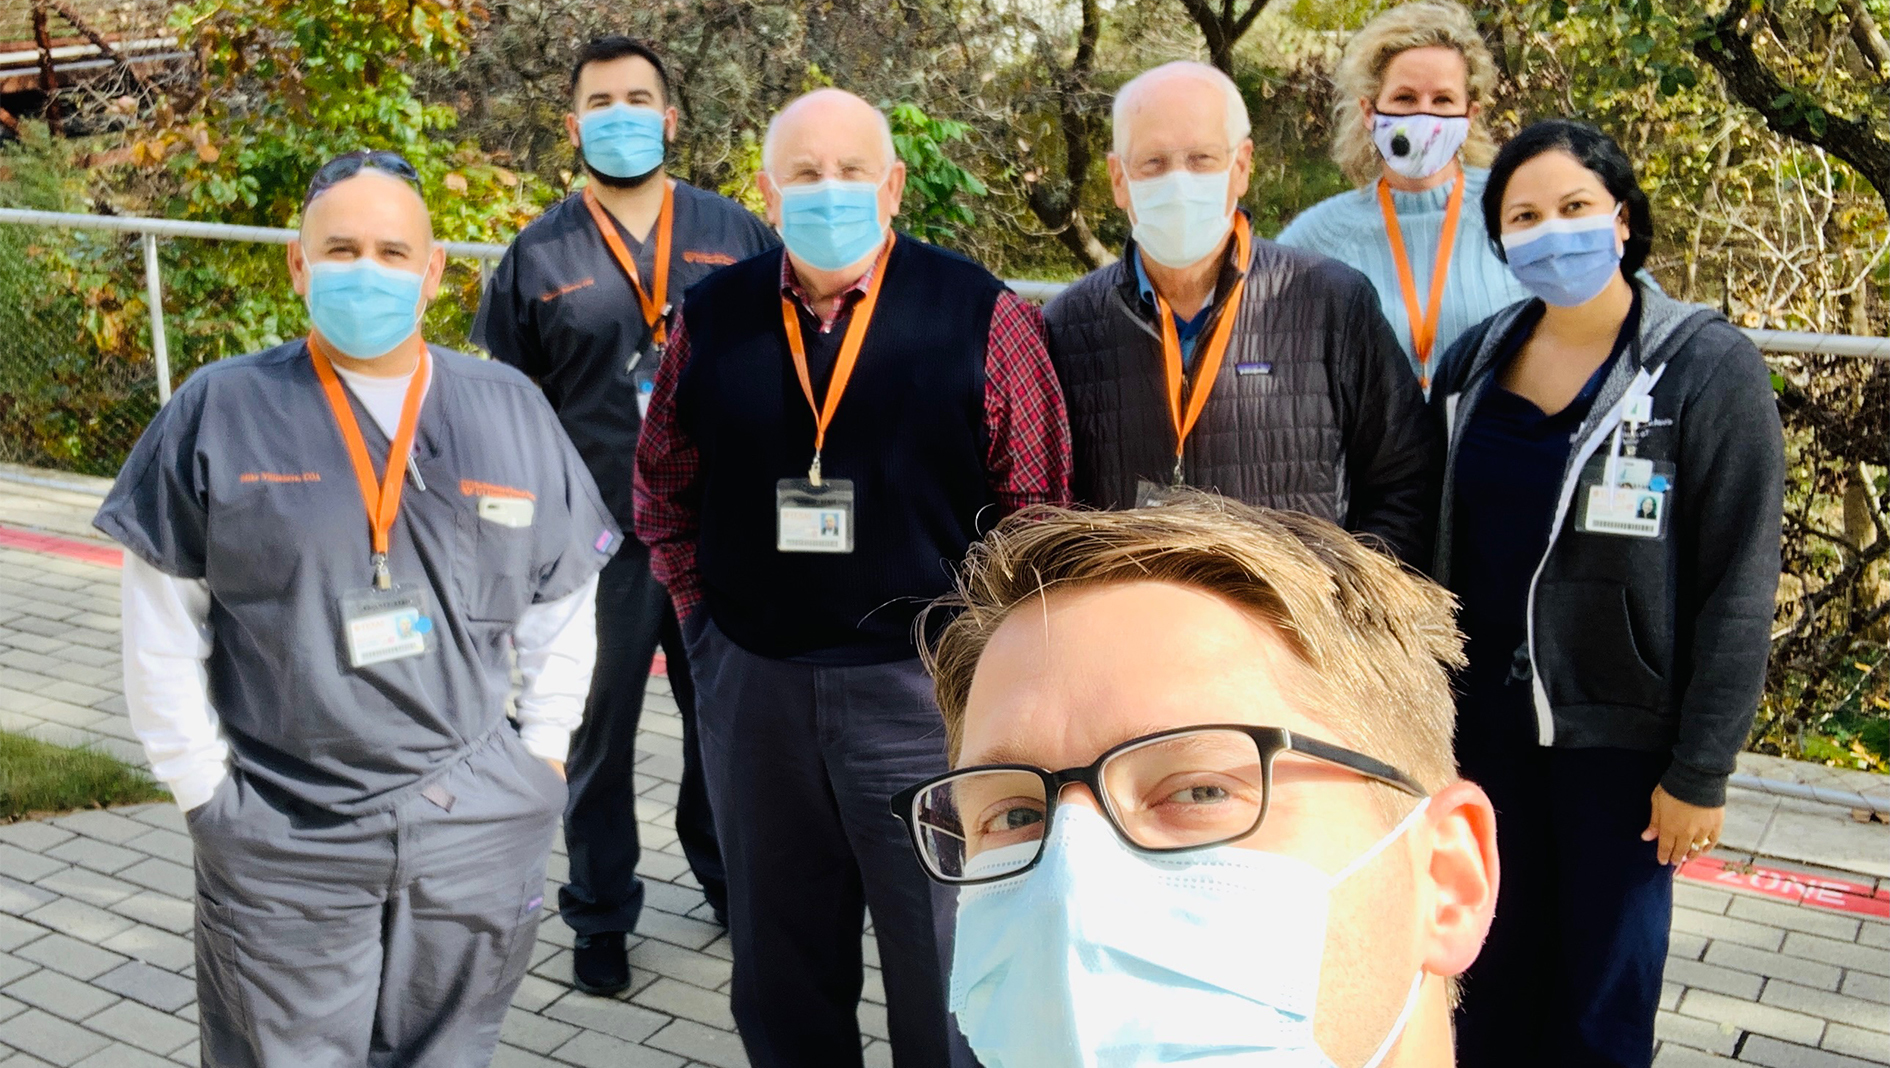 Seven members of the Ophthalmology Residency in an outdoor group photo.